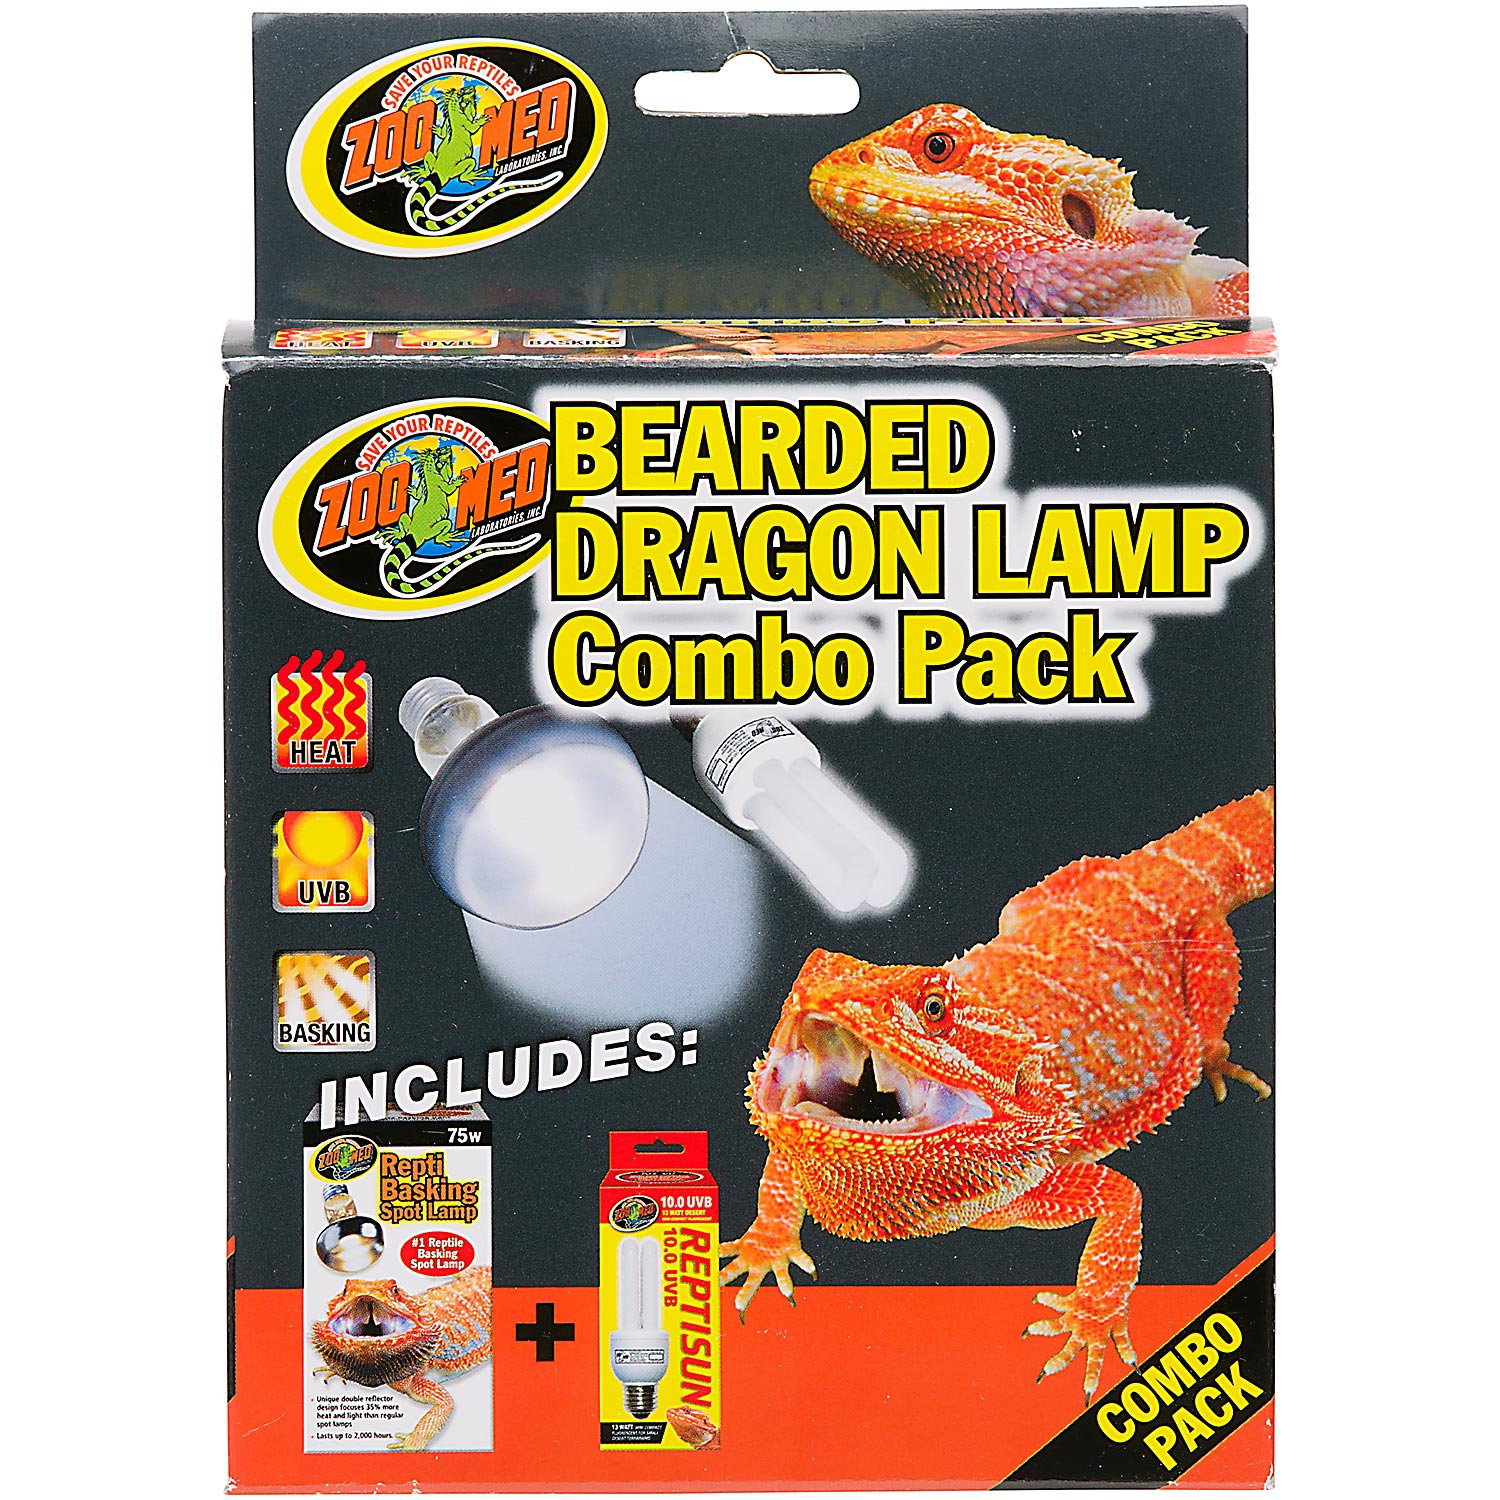 Dragon Lamps For Sale Zoo Med Bearded Dragon Lamp Combo Pack Petco